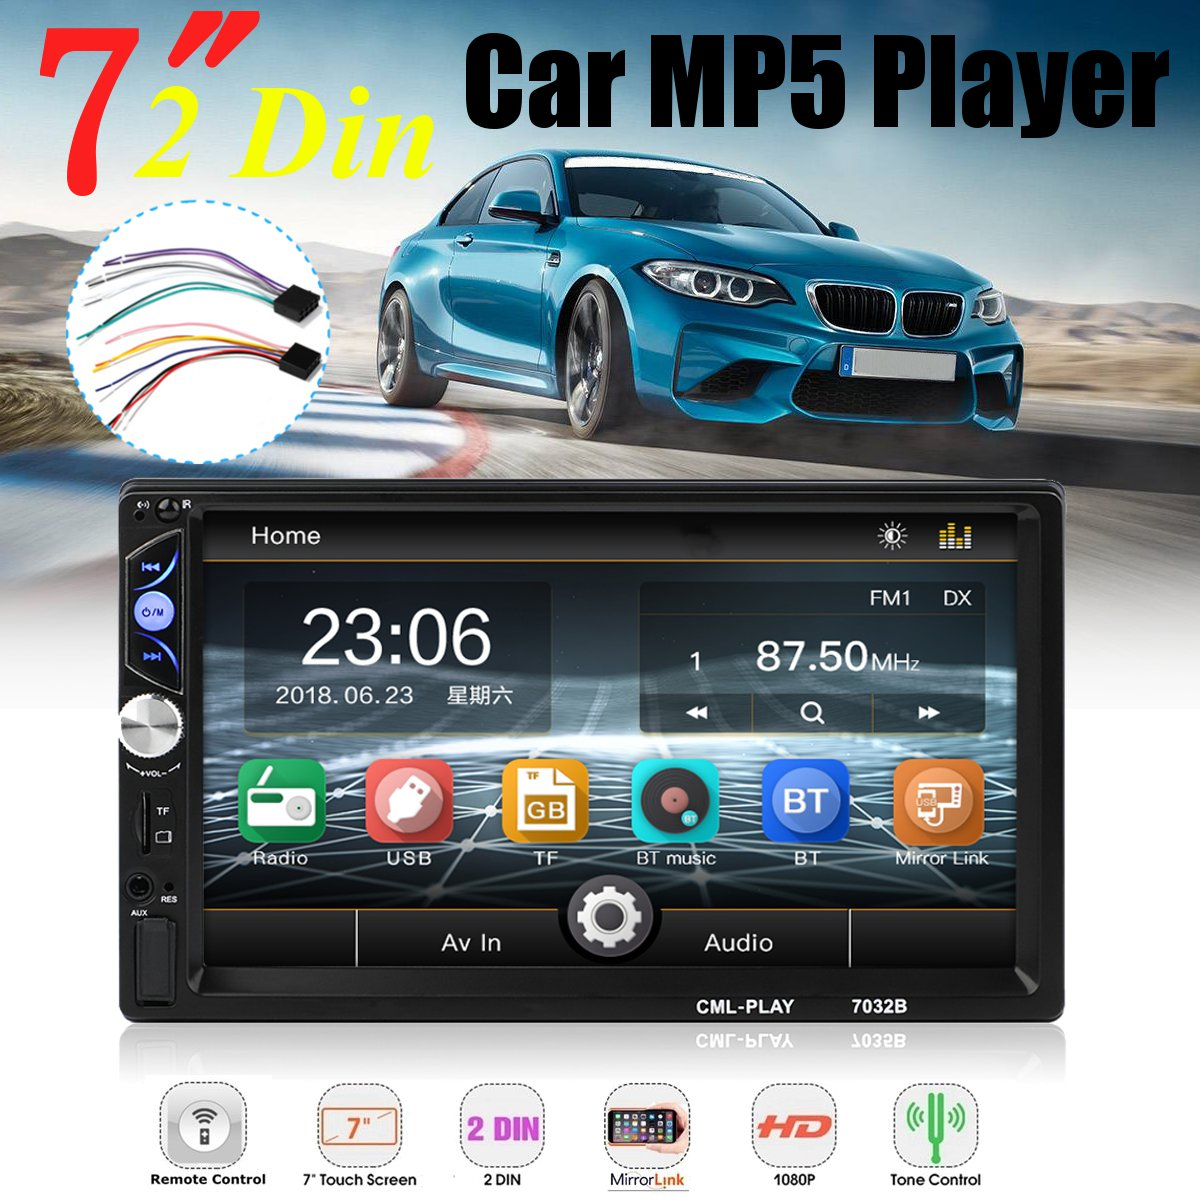 for Android Car Multimedia Player Autoradio 2din Stereo 7 For Touch Screen Video TF USB FM MP5 Player Auto Radio Car Multimediafor Android Car Multimedia Player Autoradio 2din Stereo 7 For Touch Screen Video TF USB FM MP5 Player Auto Radio Car Multimedia